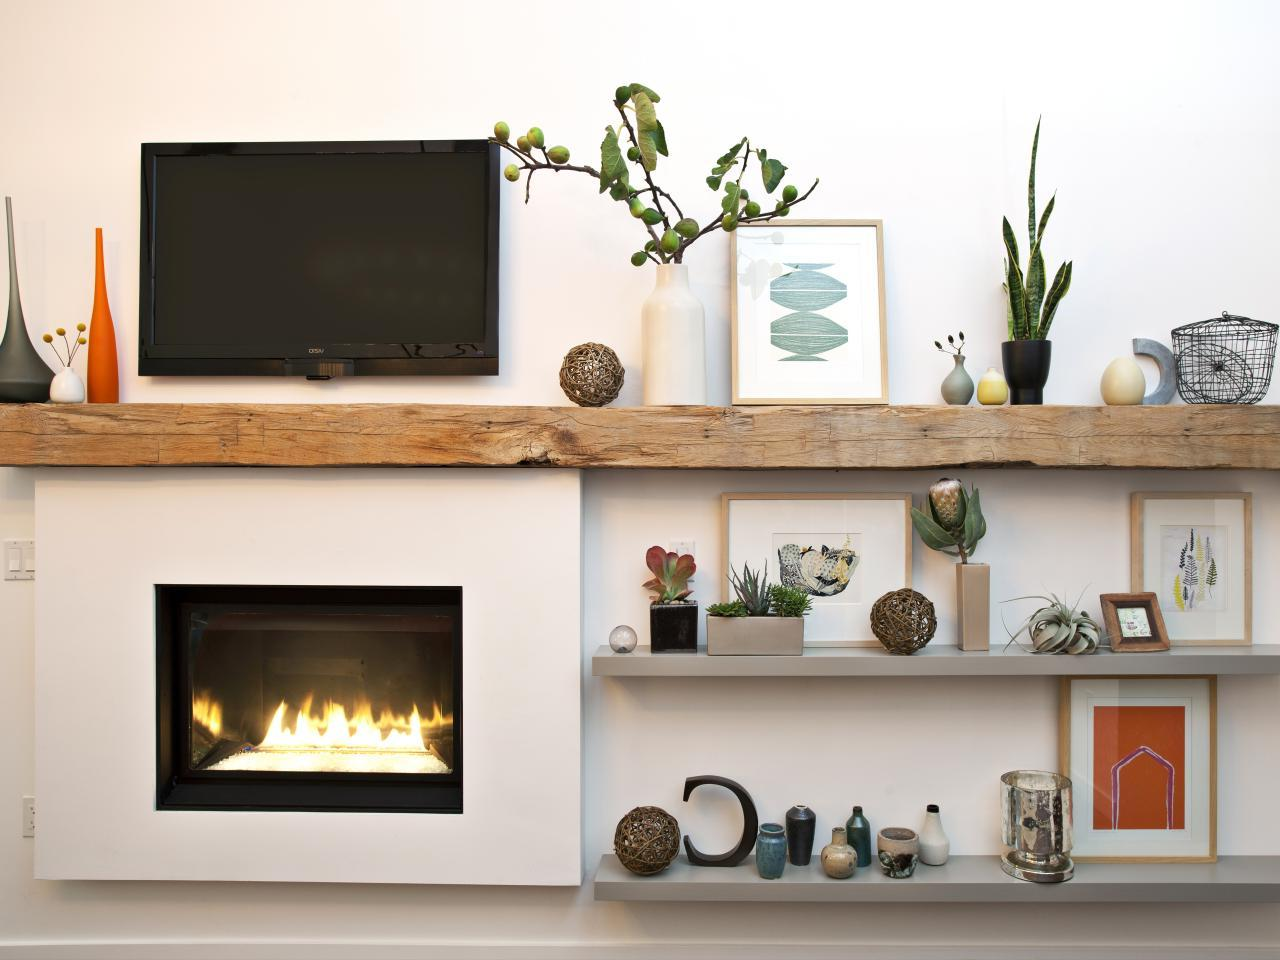 Wall Fireplace With LCD TV